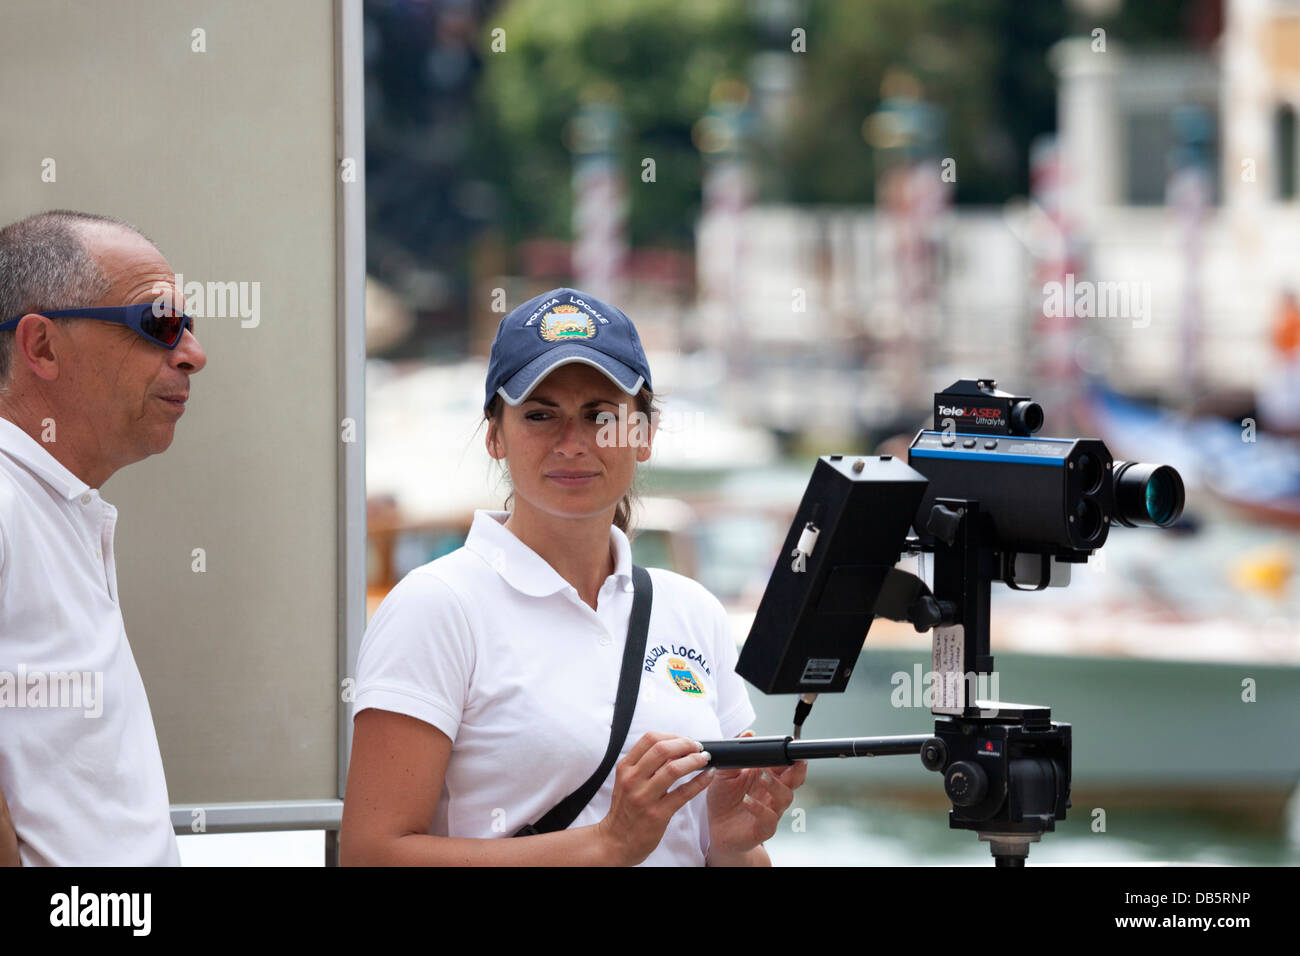 In Venice, local policemen checking the allowed boat speed on the Grand Canal with the help of a radar speed camera - Stock Image